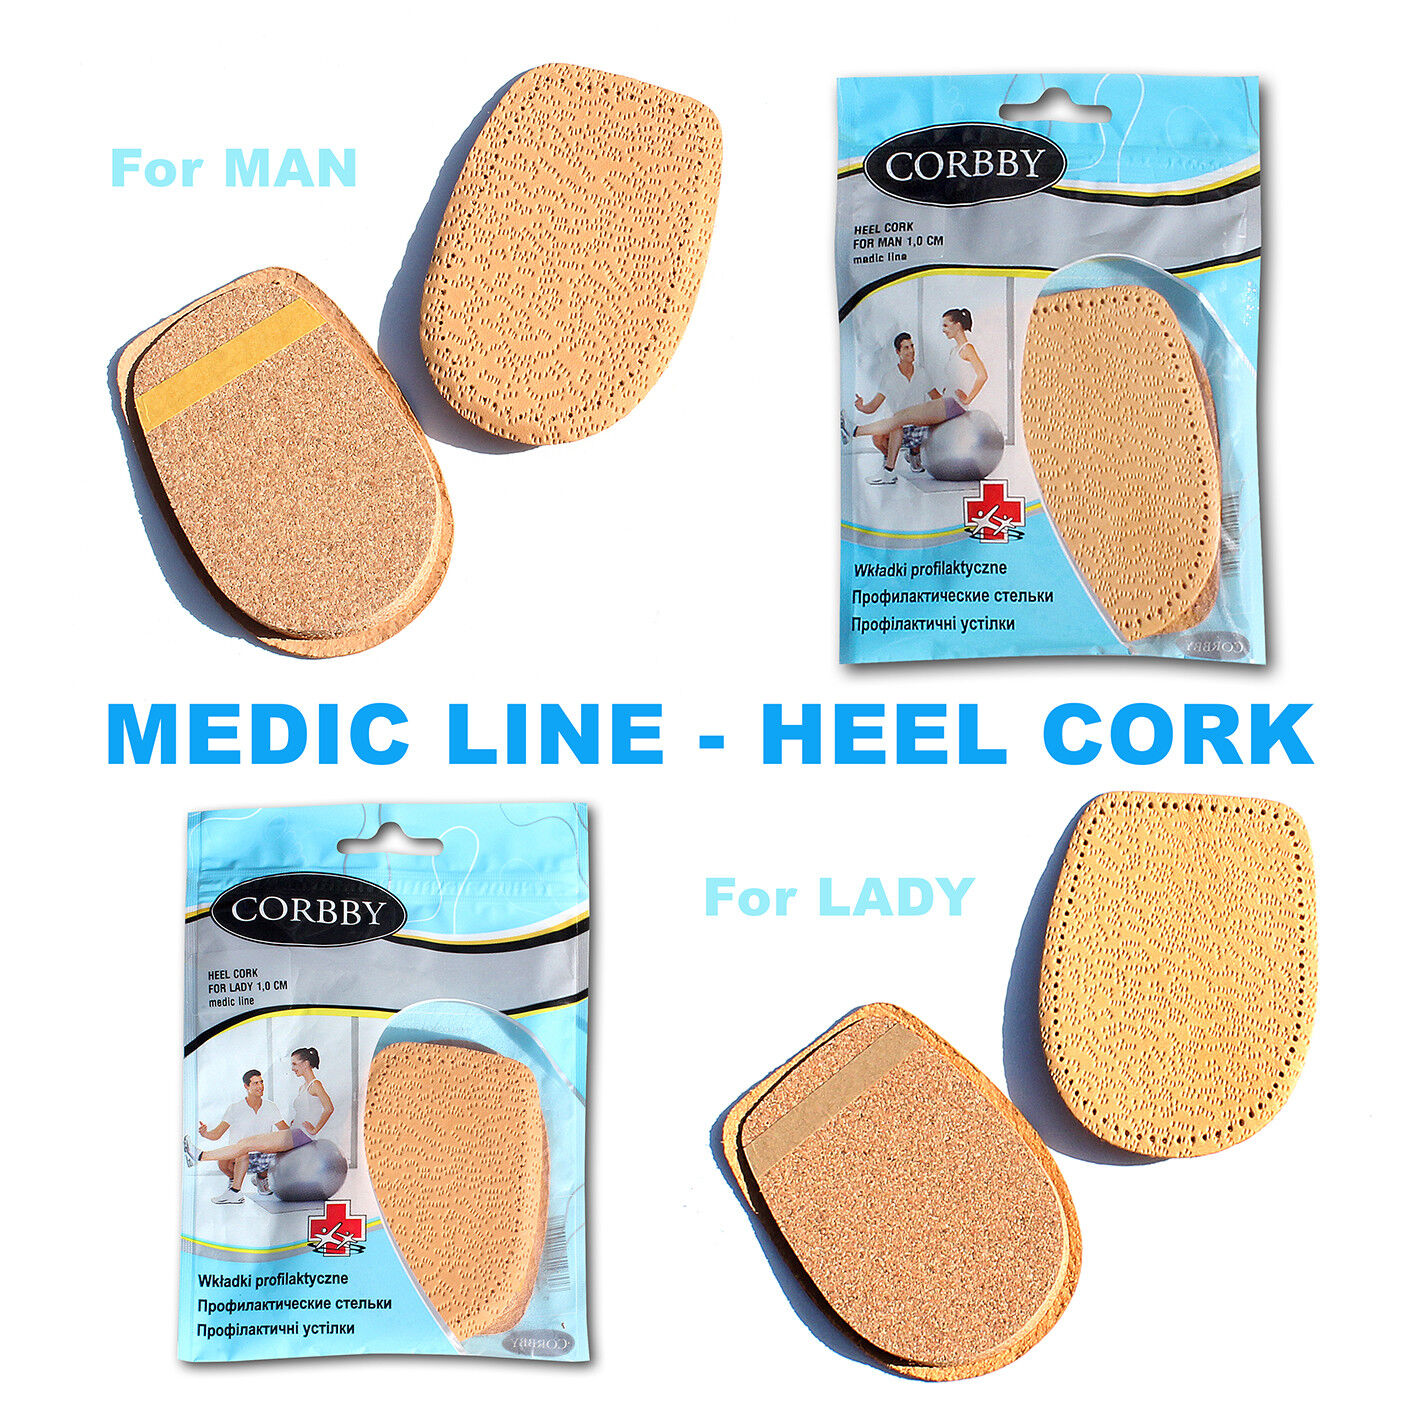 Man's/Woman's MEDIC LINE - Shoes PROTECTION - Heel Leather Shoes - Insoles Cork Elegant for Lady & Man Clearance price New design Comfortable and natural HH83 db10a6